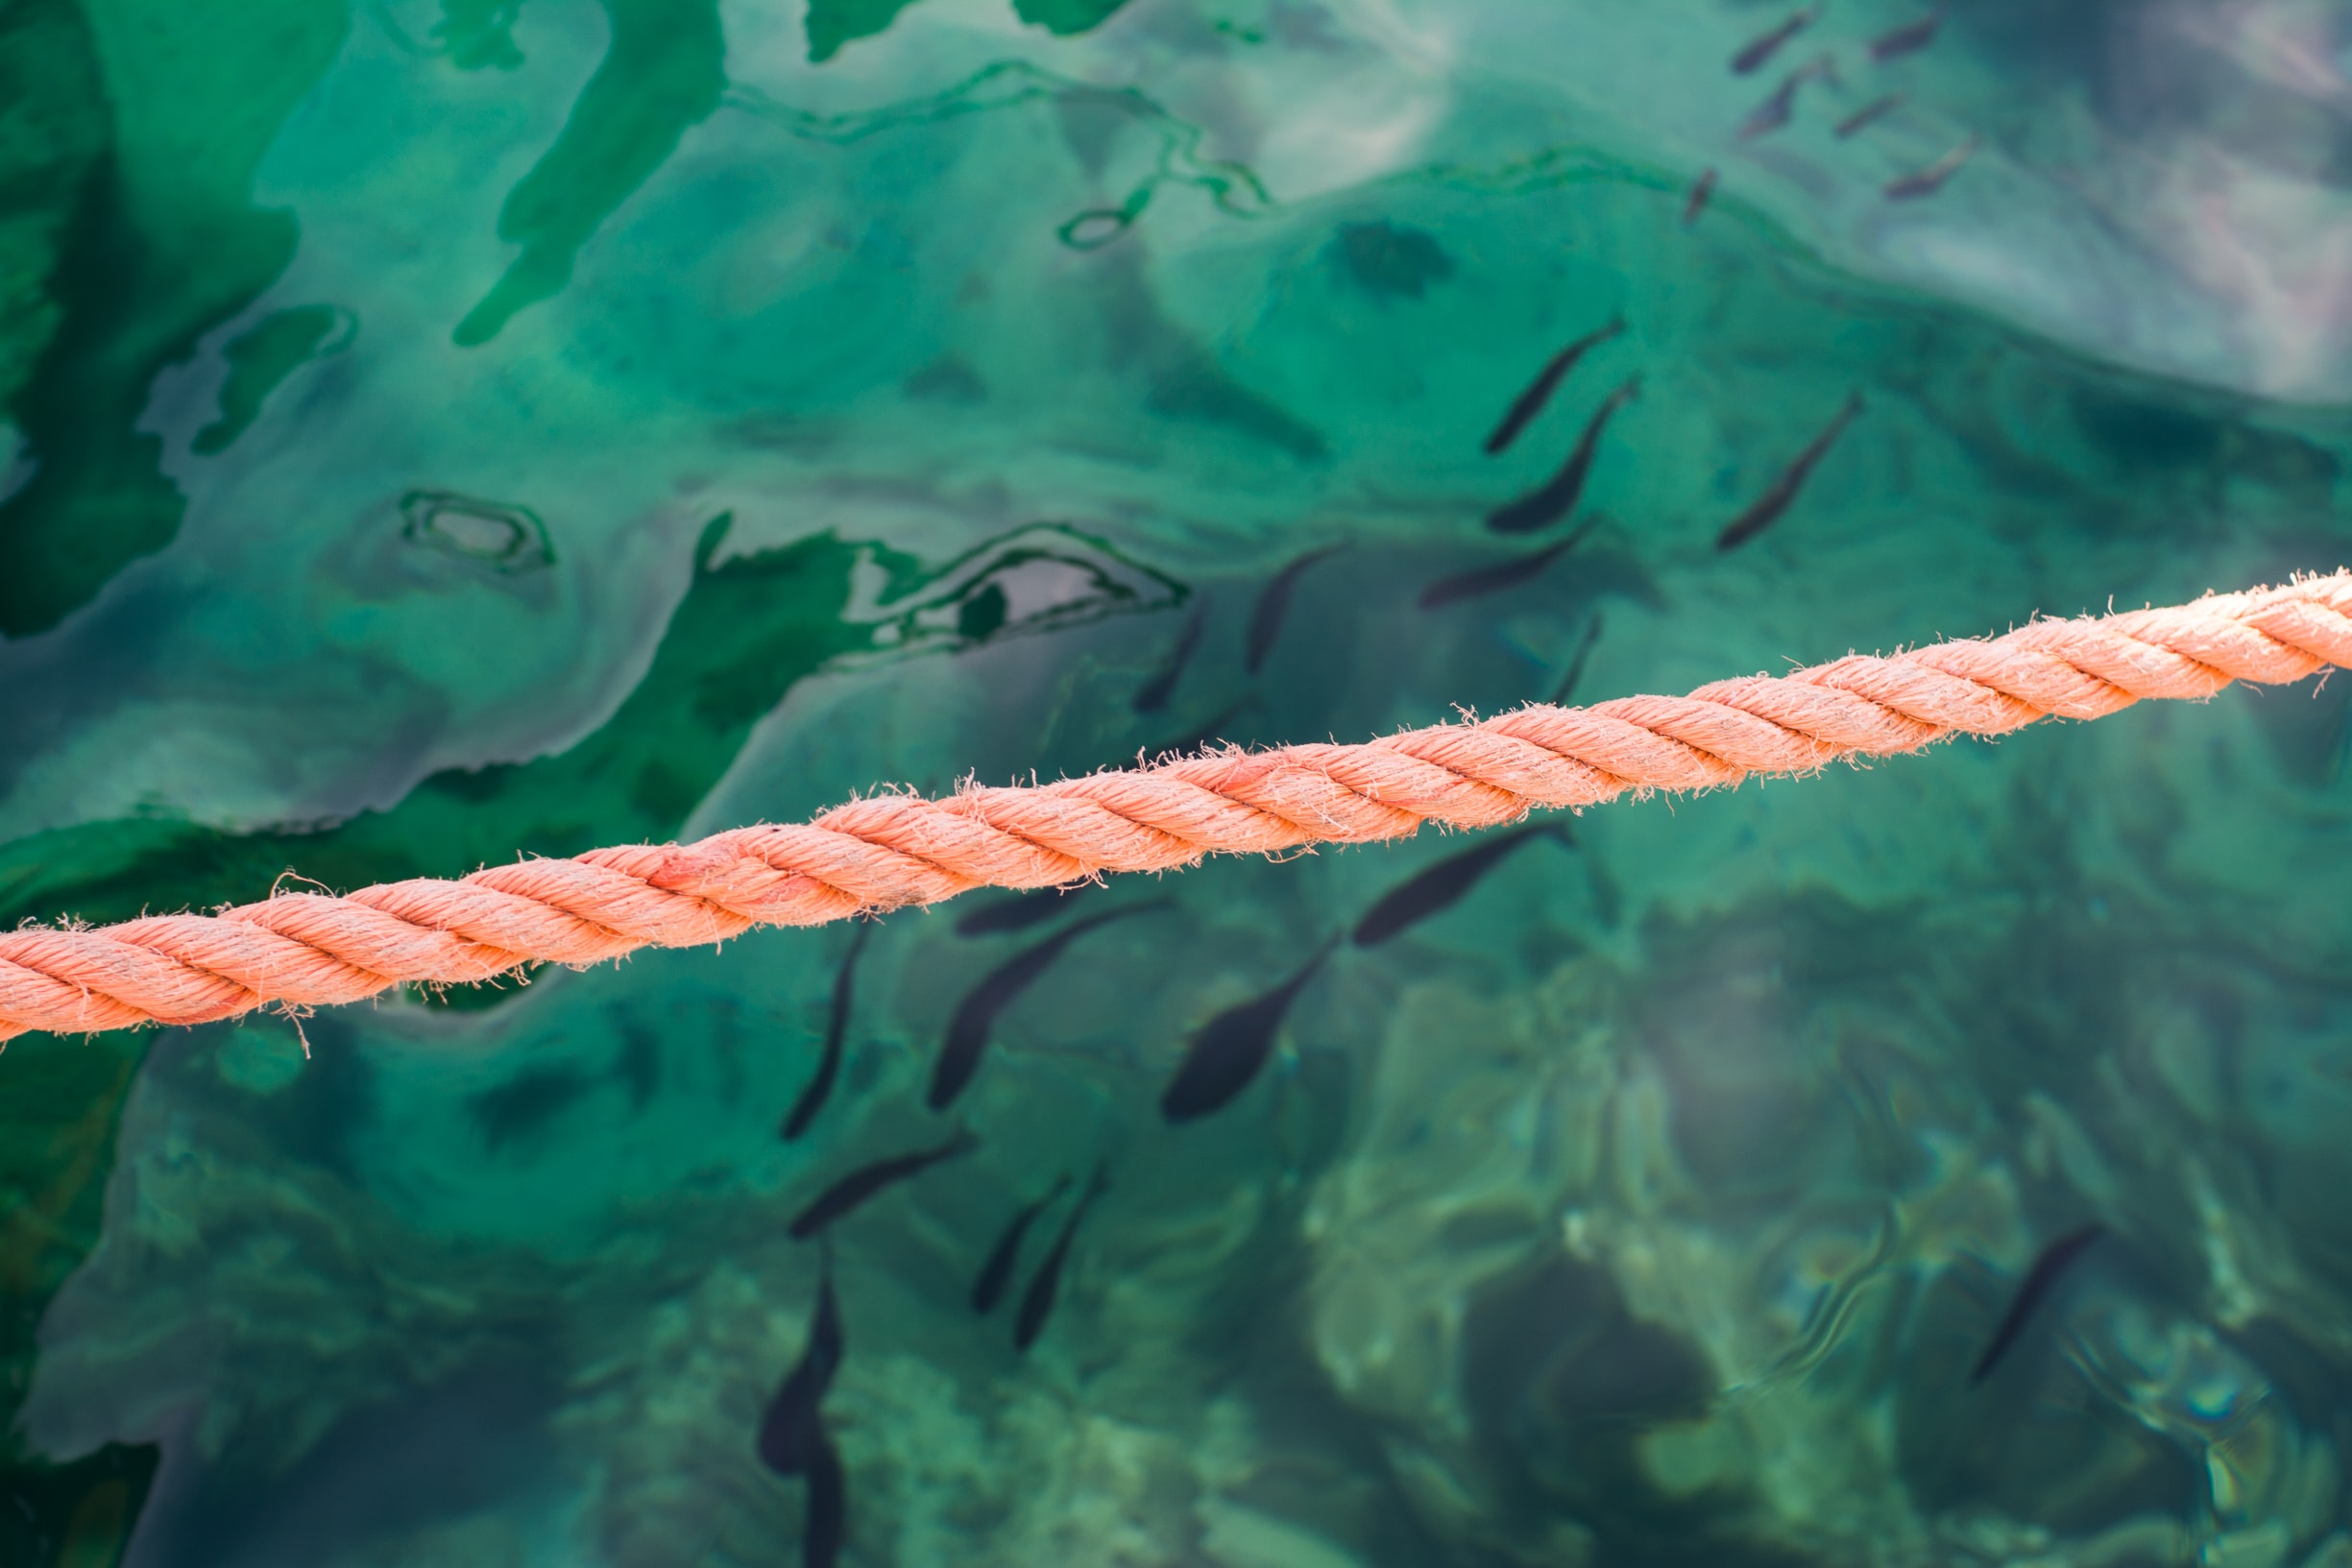 A rope sitting along the water near the Italian island, Isola del Giglio